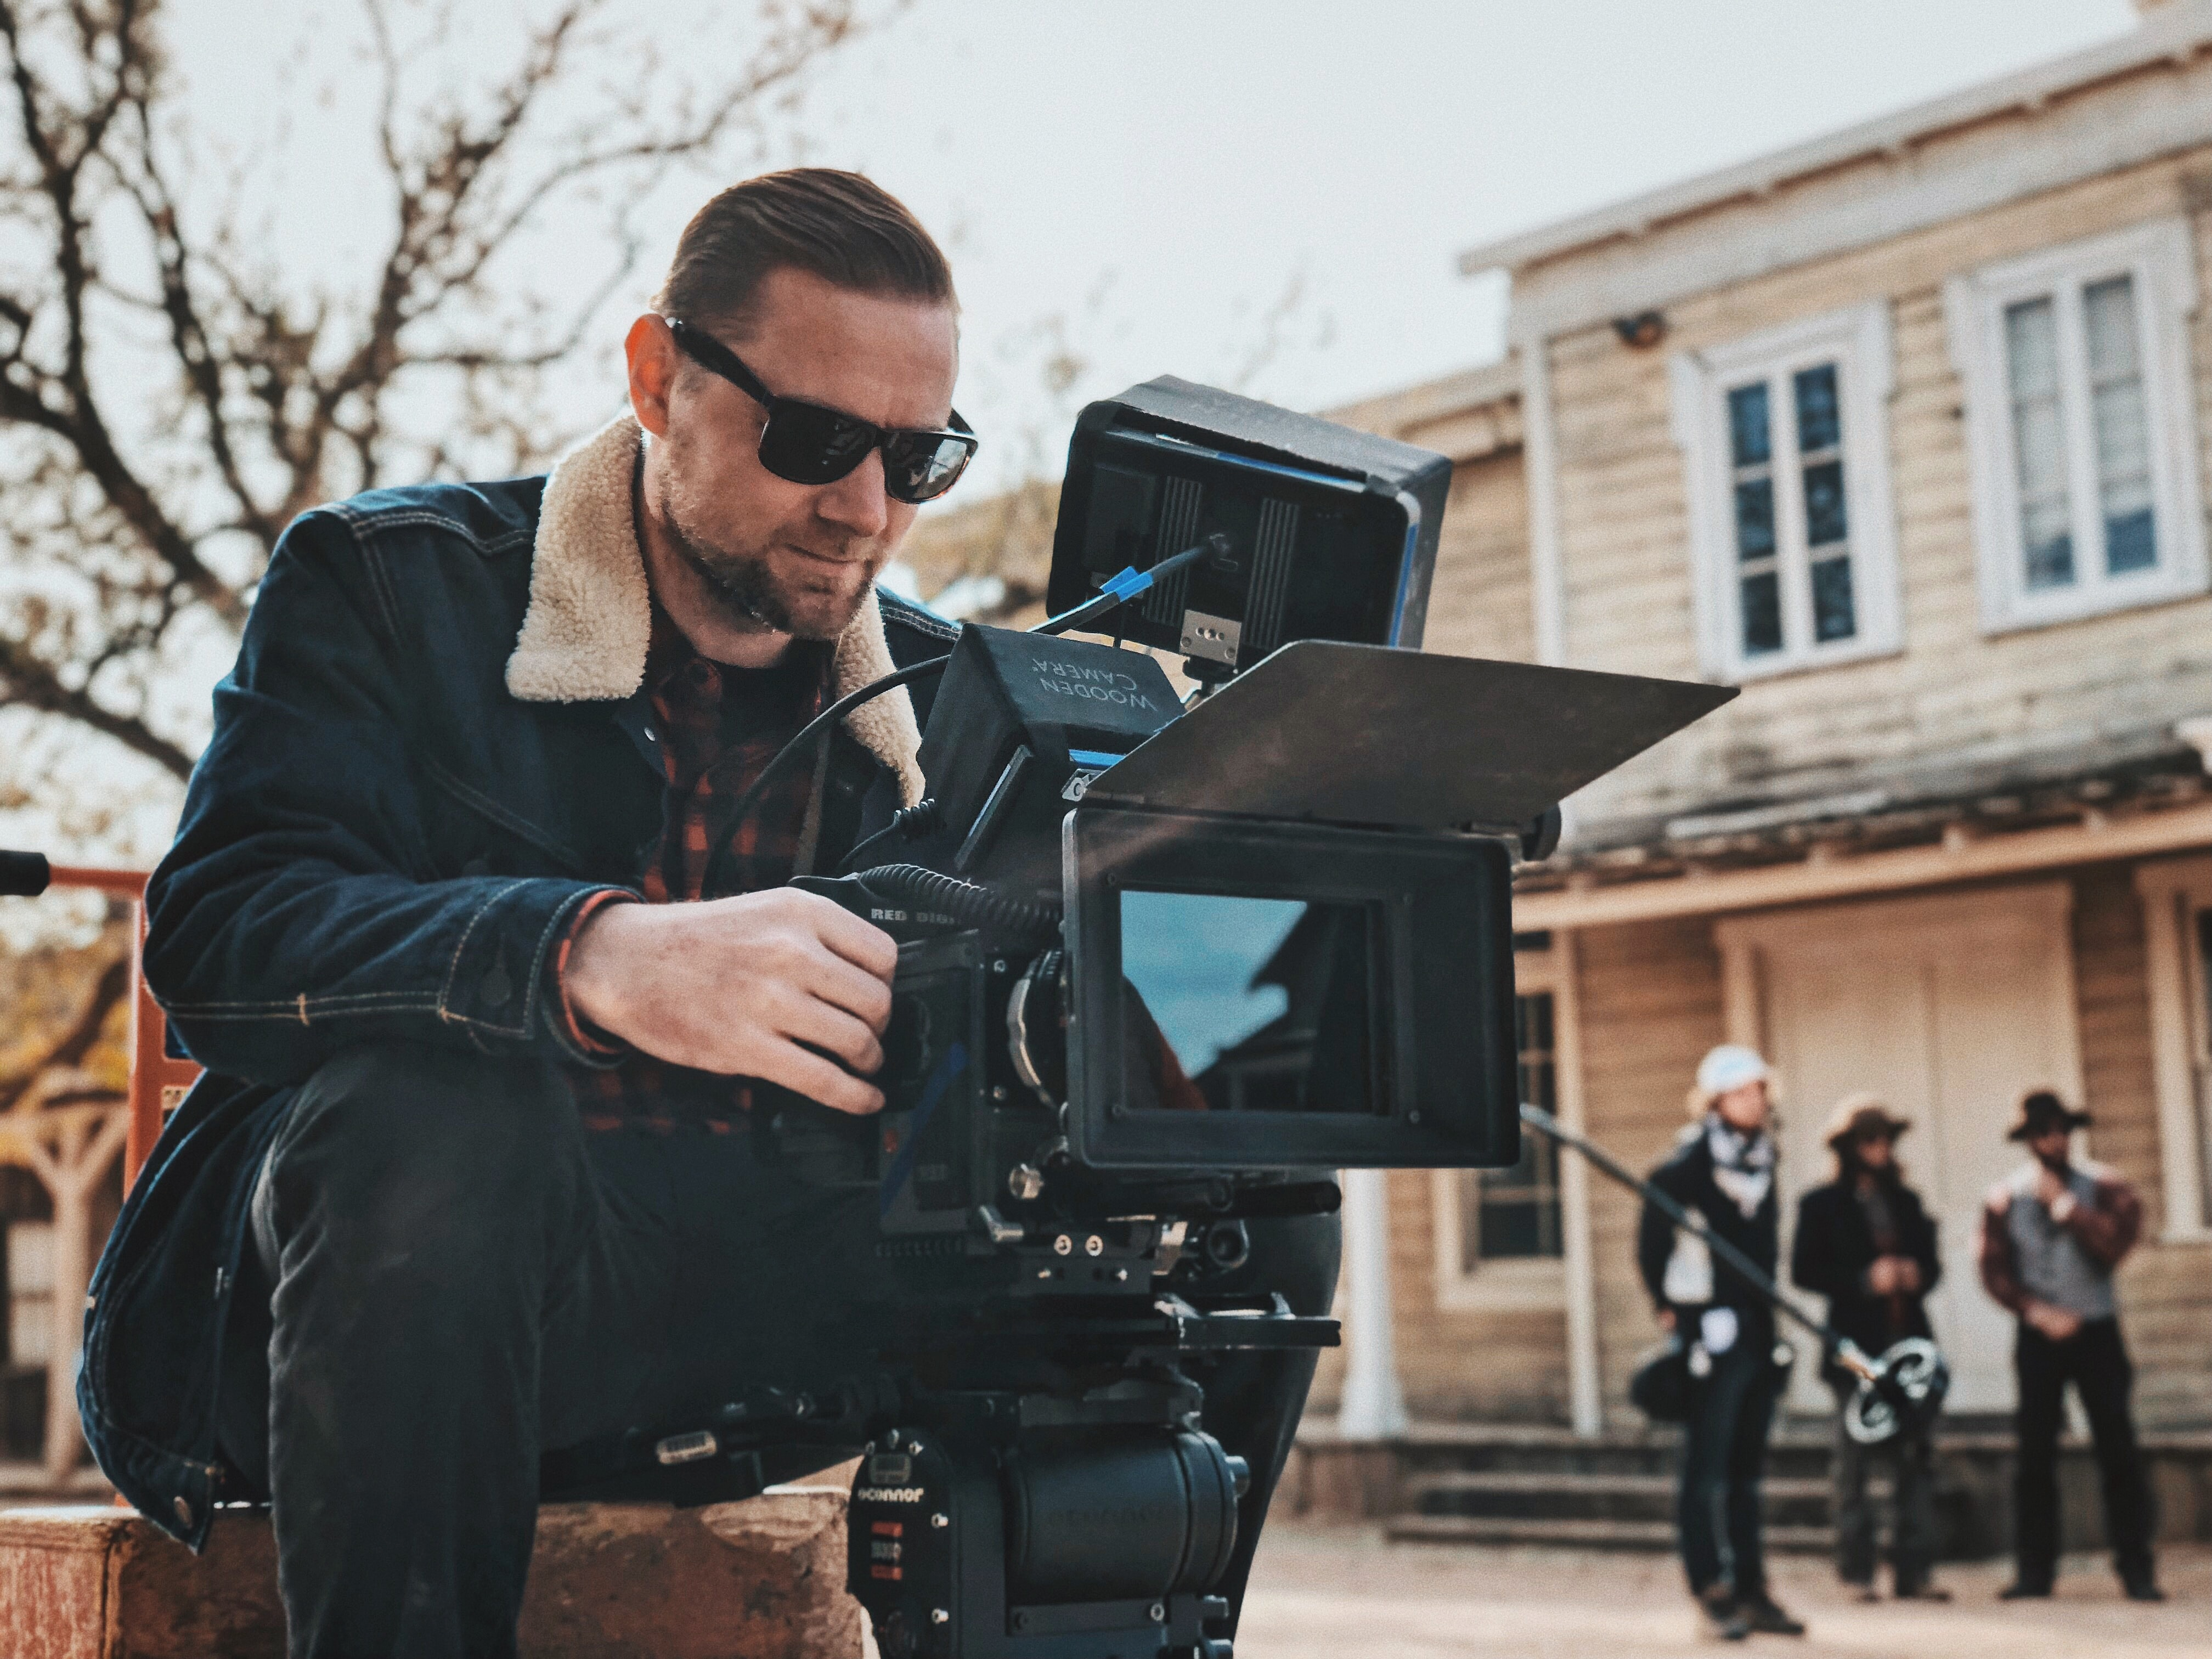 man sitting on bench near house while holding camera during daytime